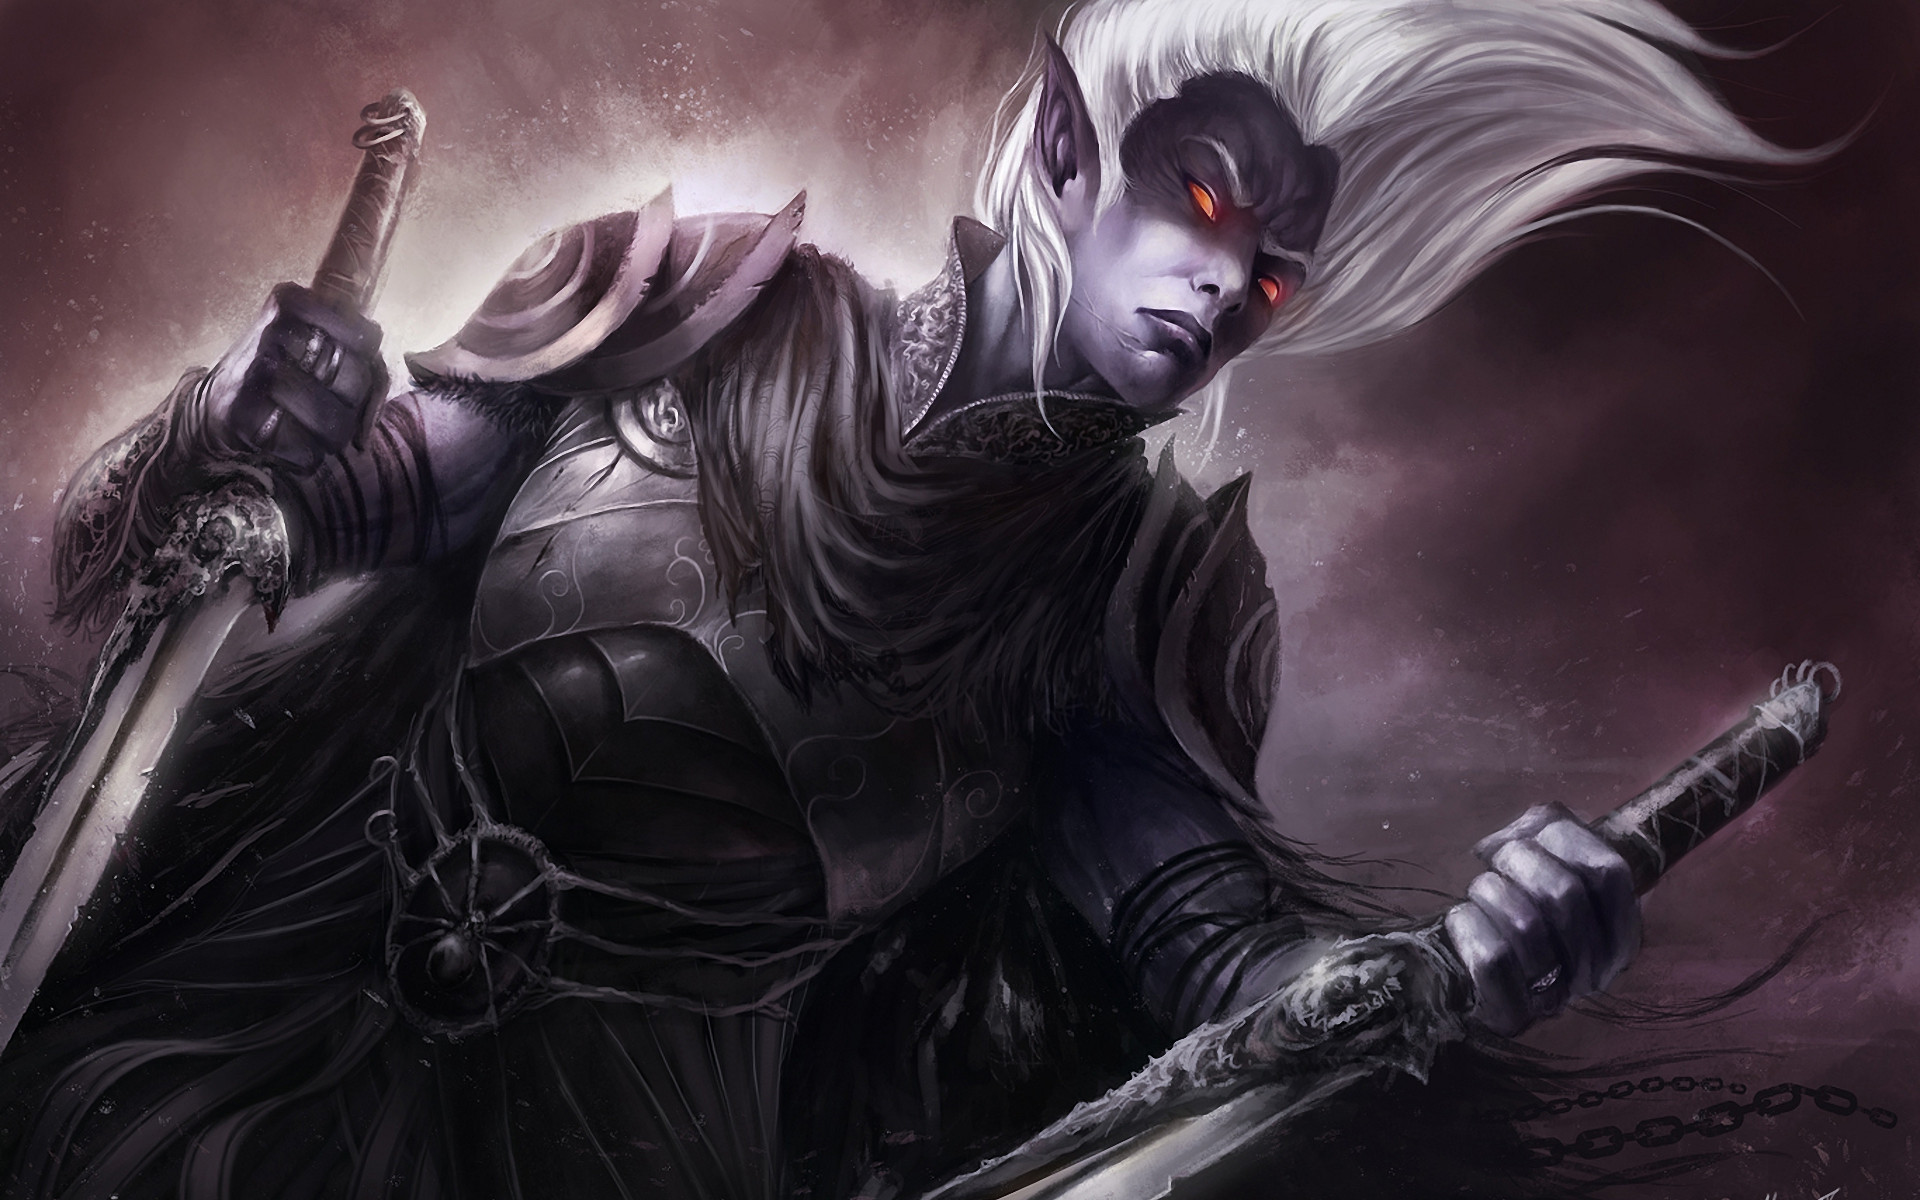 1920x1200 fantasy-dark-wizard-free-desktop-wallpaper-.jpg (